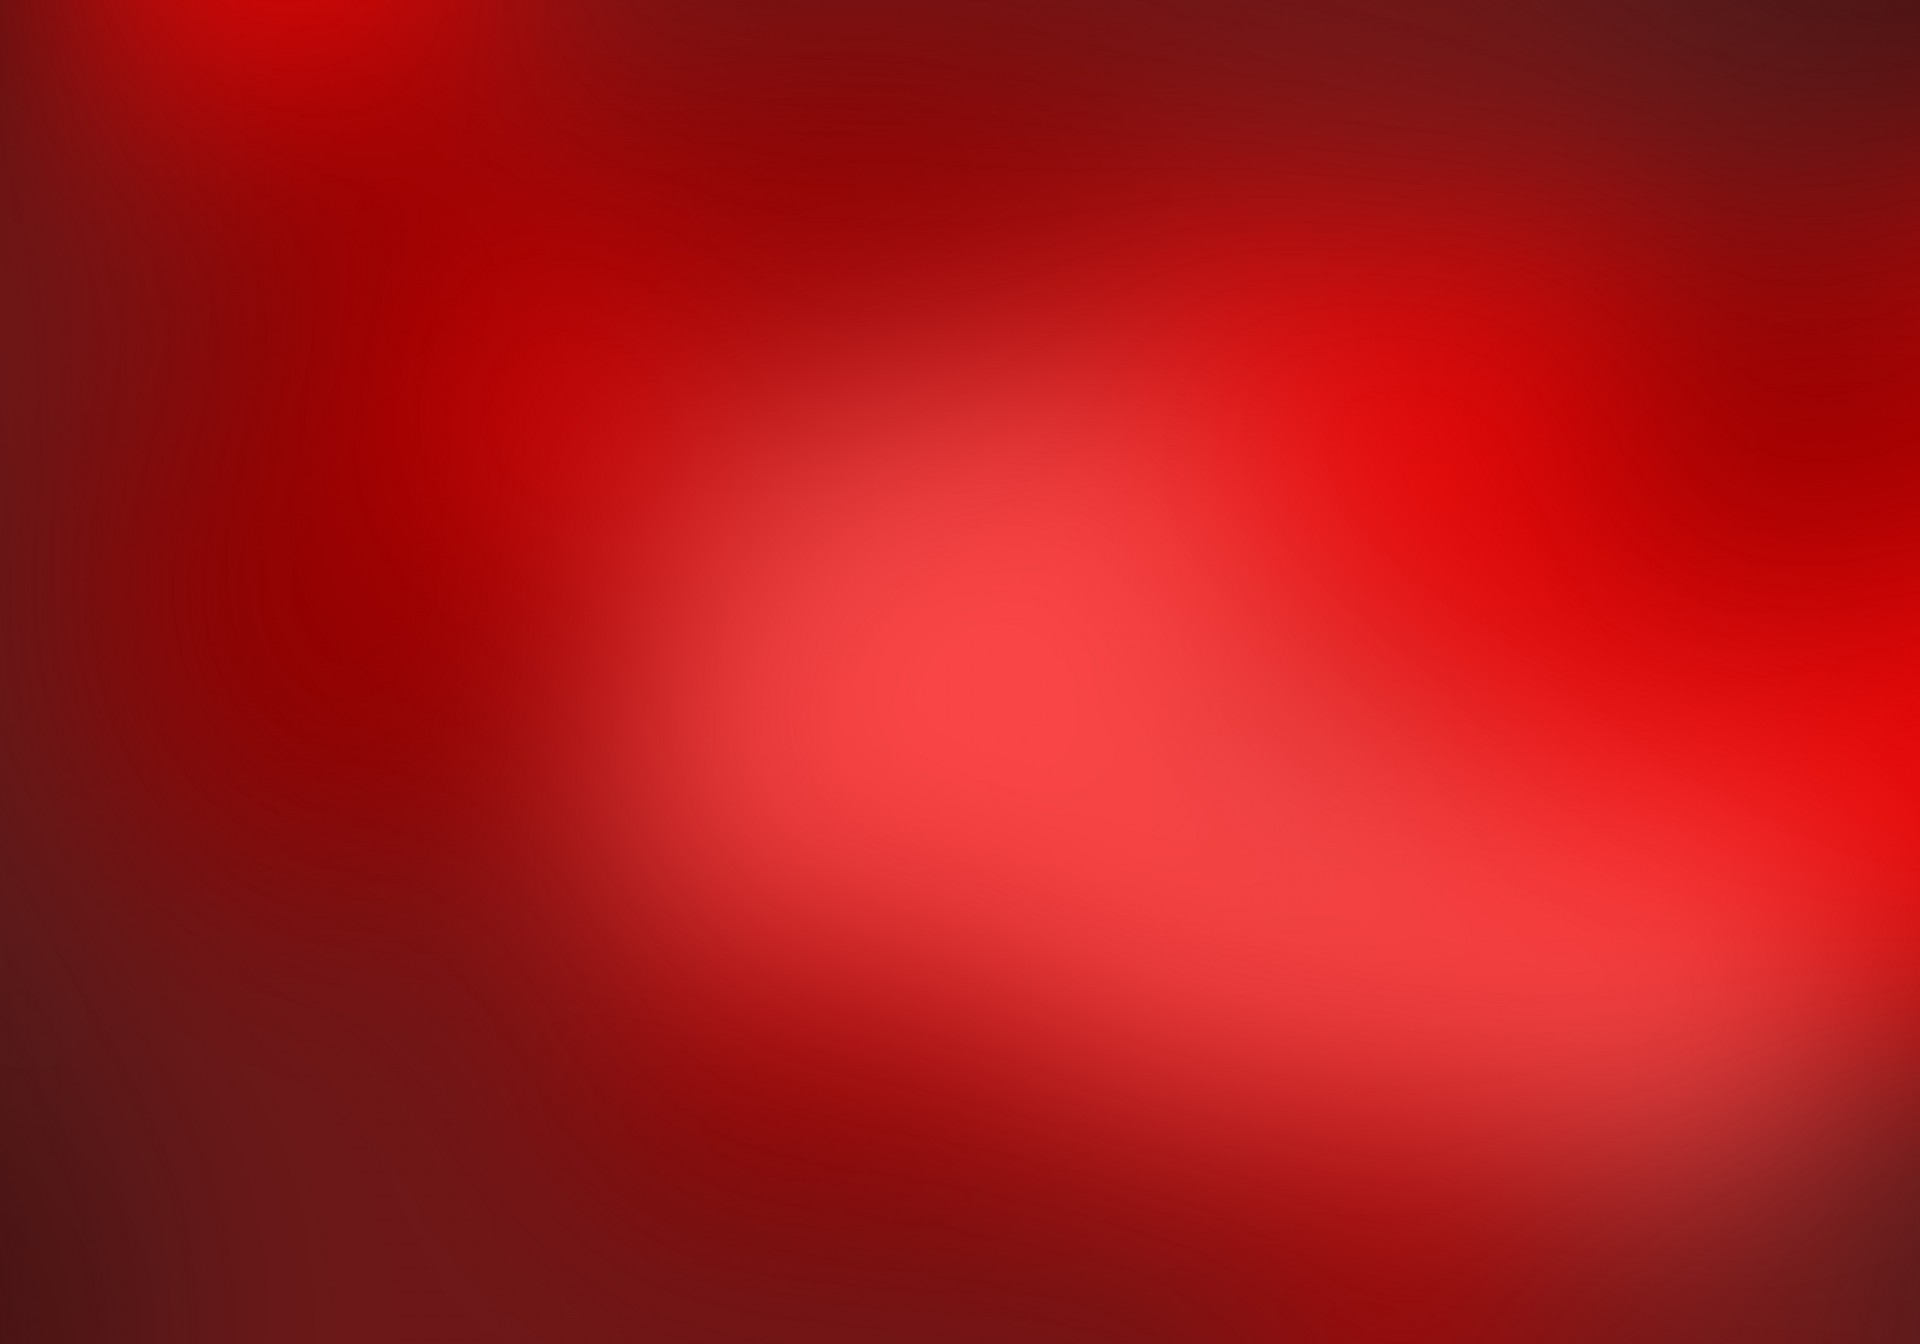 Red Background Blur Free Stock Photo - Public Domain Pictures